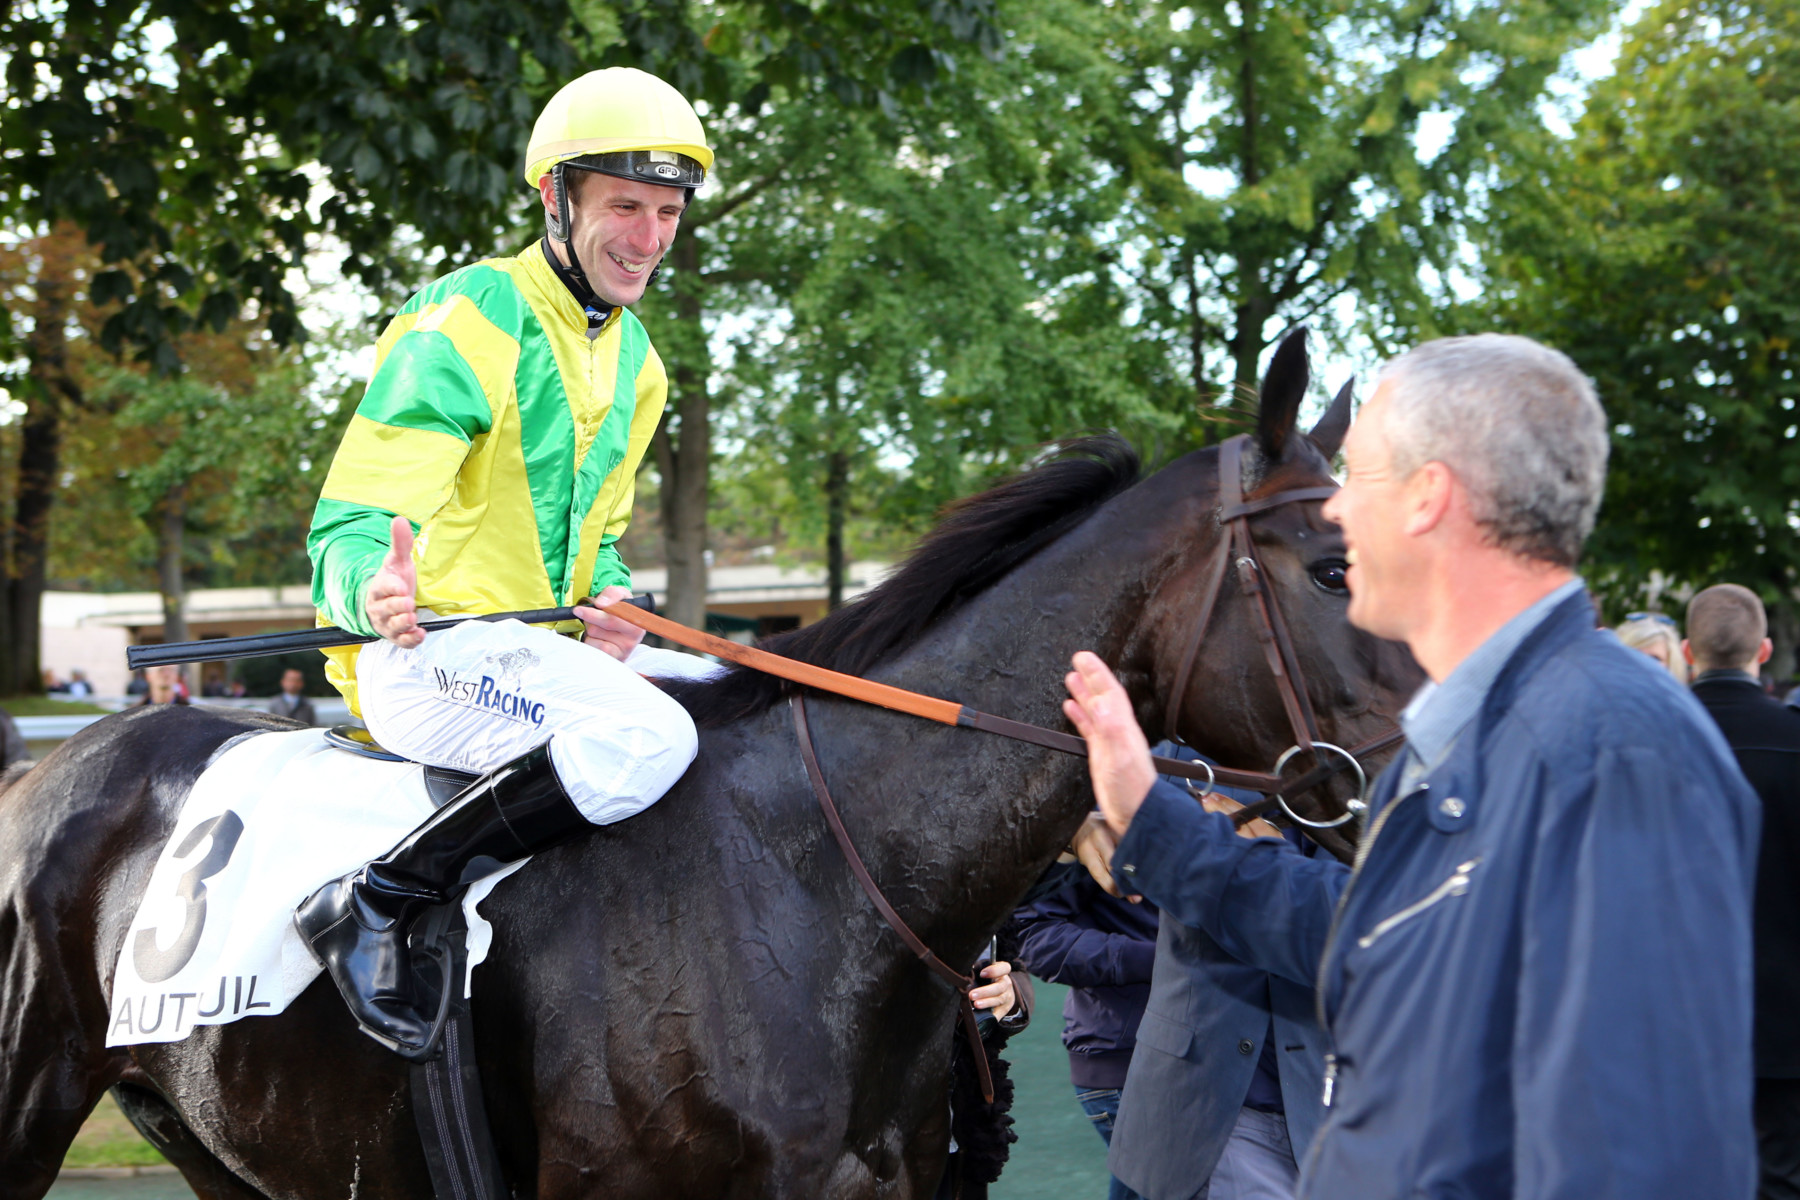 Thomas Beaurain, un jockey en pleine ascension